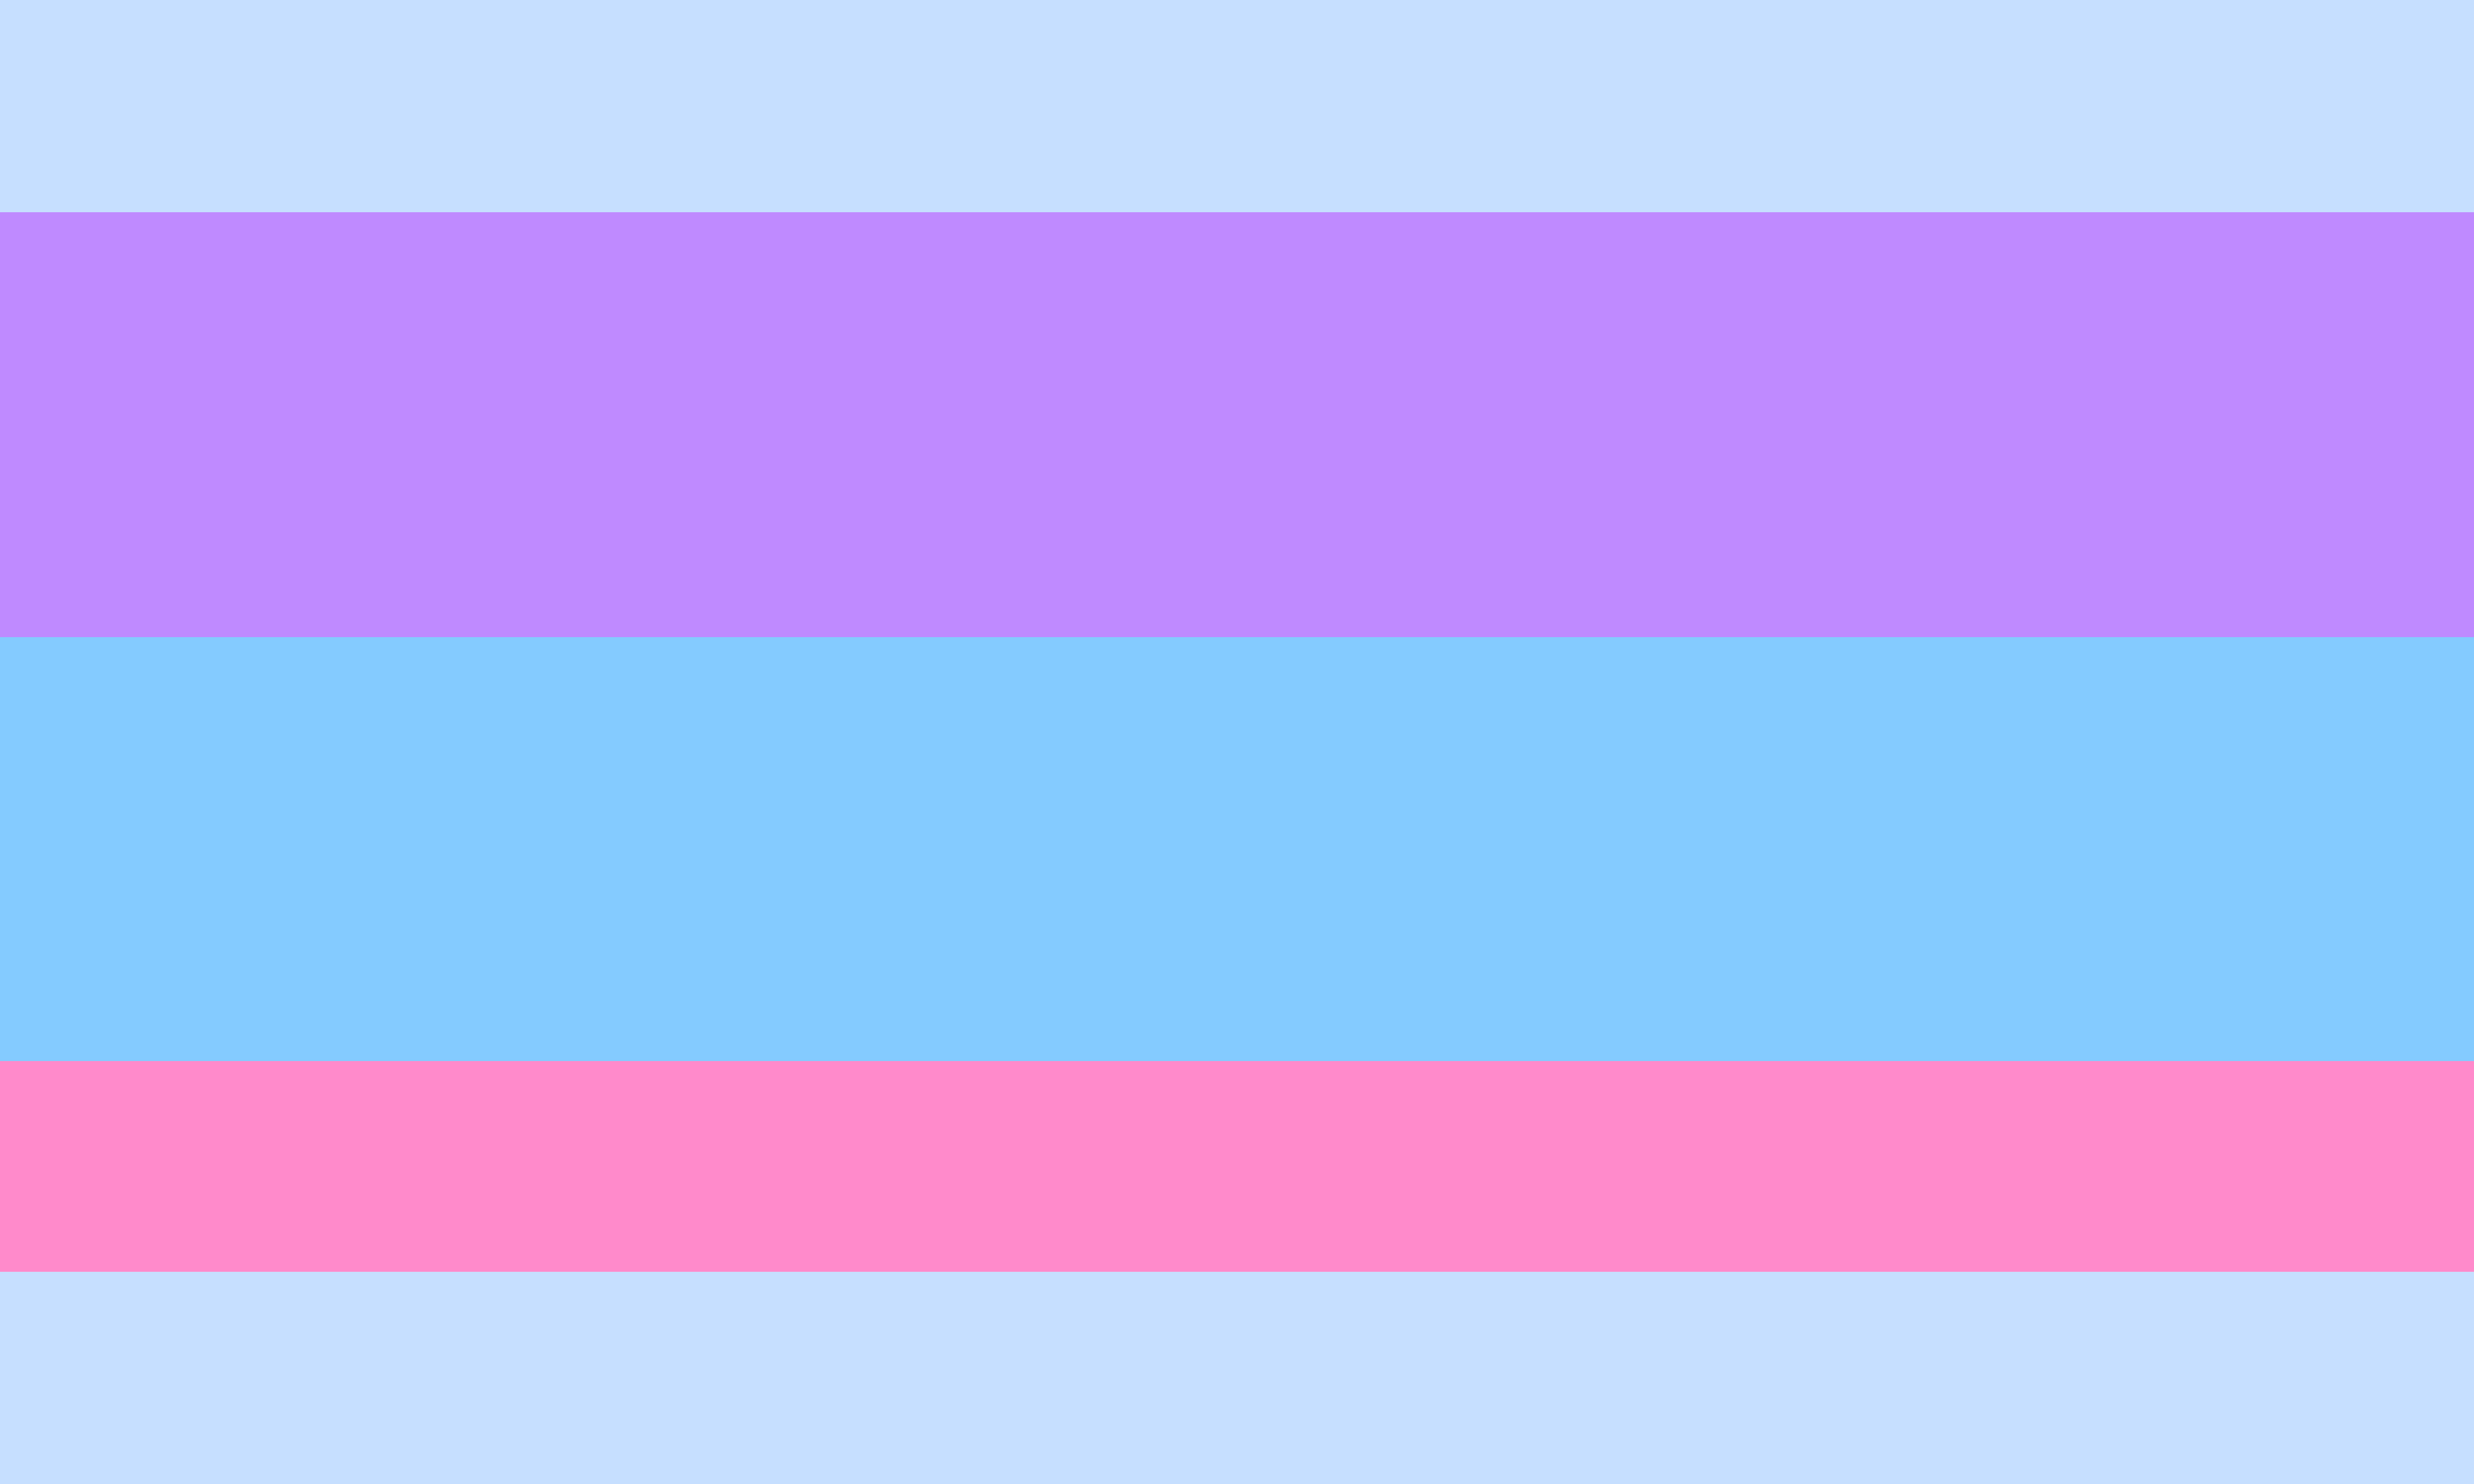 bialterous neutral masculine leaning by pride flags on deviantart